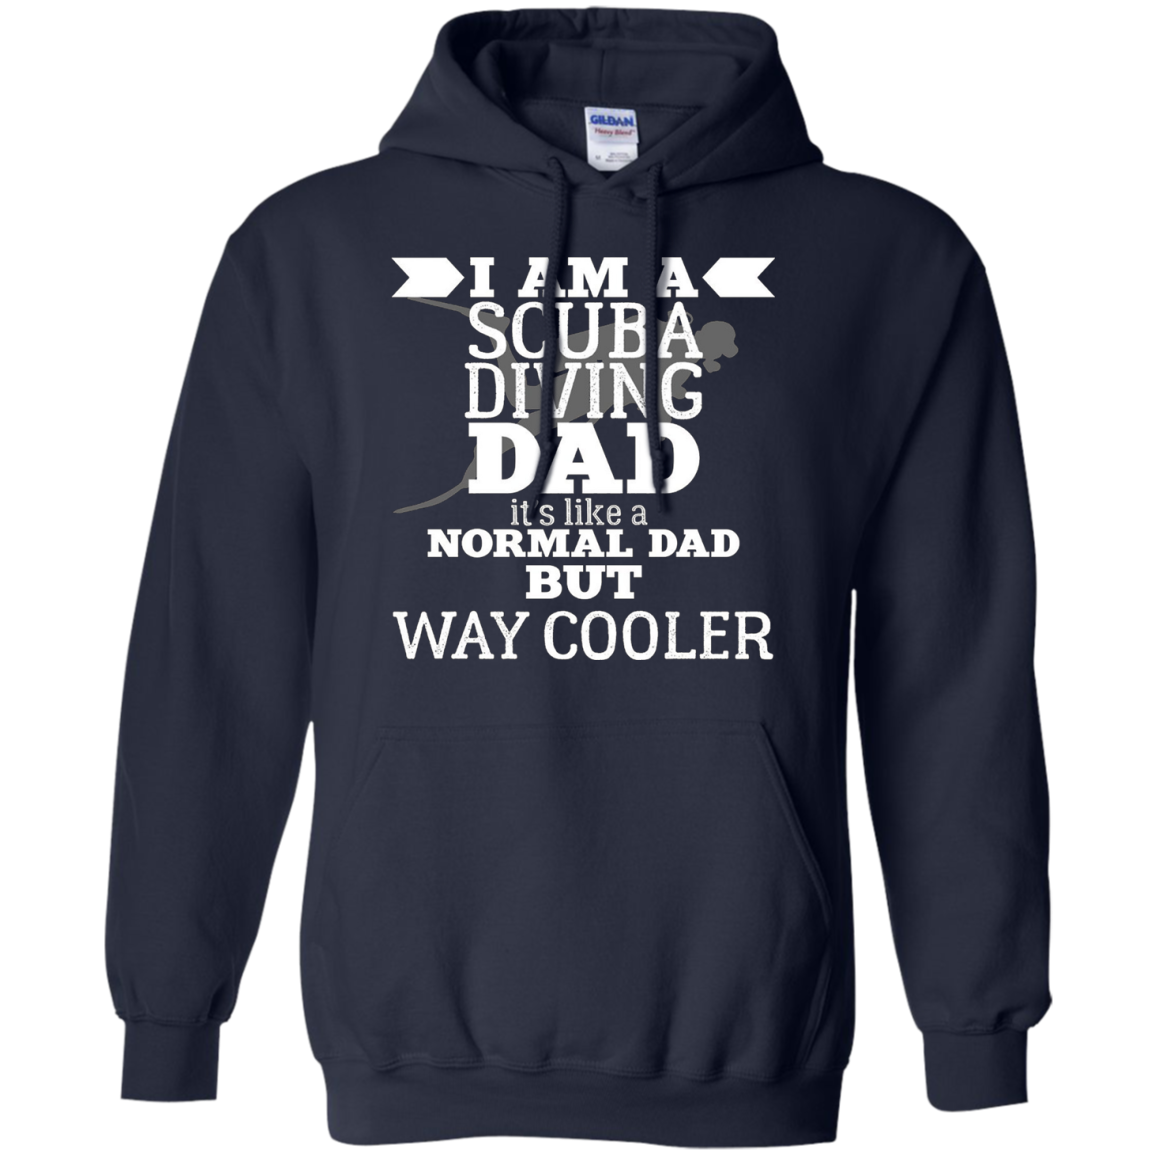 Men's I'M A SCUBA DIVING DAD T-SHIRT FUNNY FATHER'S DAY HUMOR GIFT